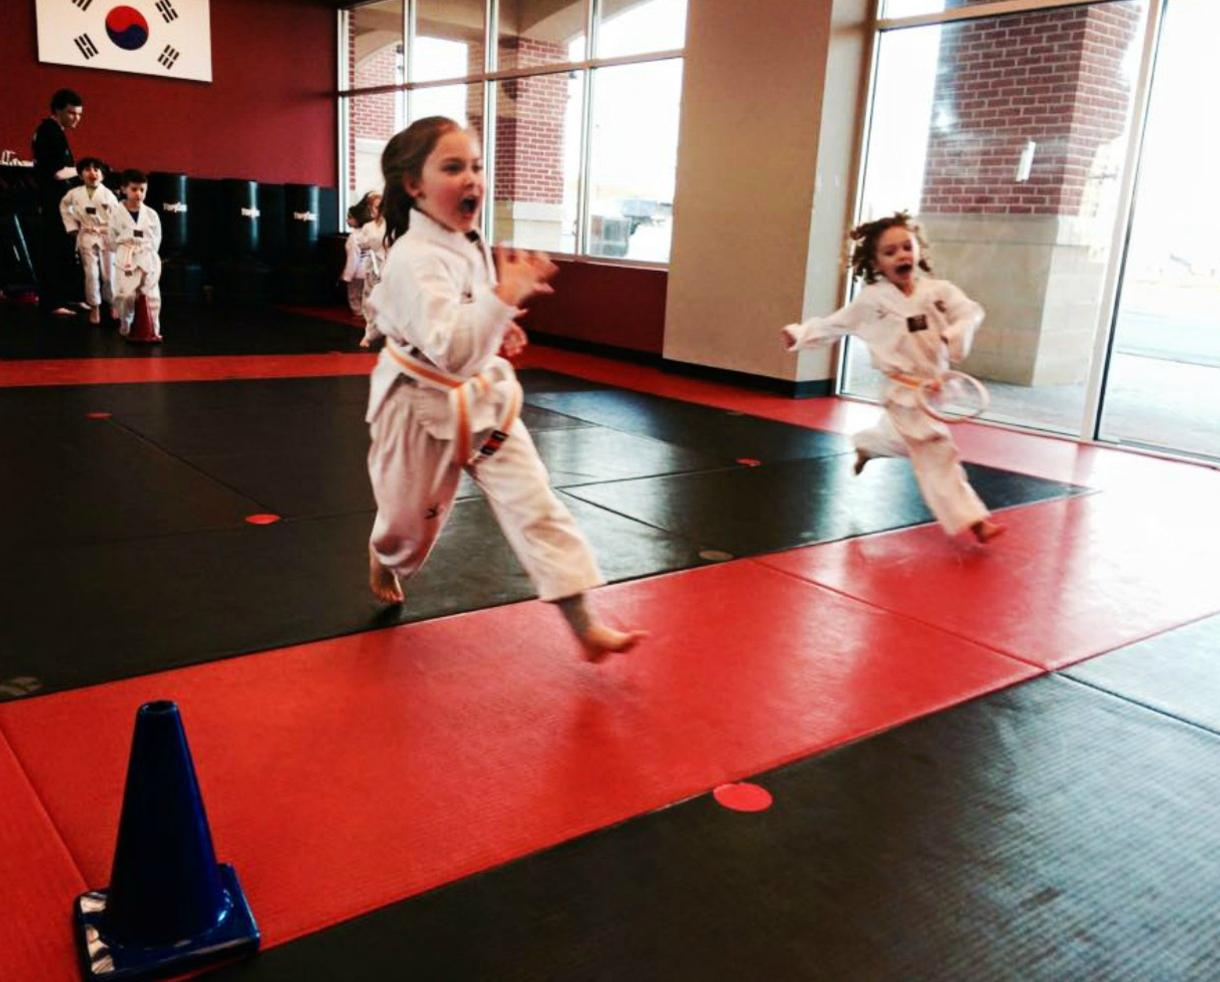 $209 for Award-Winning TopKick Martial Arts and Sports Camp for Ages 5-12 - ALL 5 LOCATIONS - South Riding, Potomac Falls, Broadlands, Purcellville and Leesburg (36% Off)